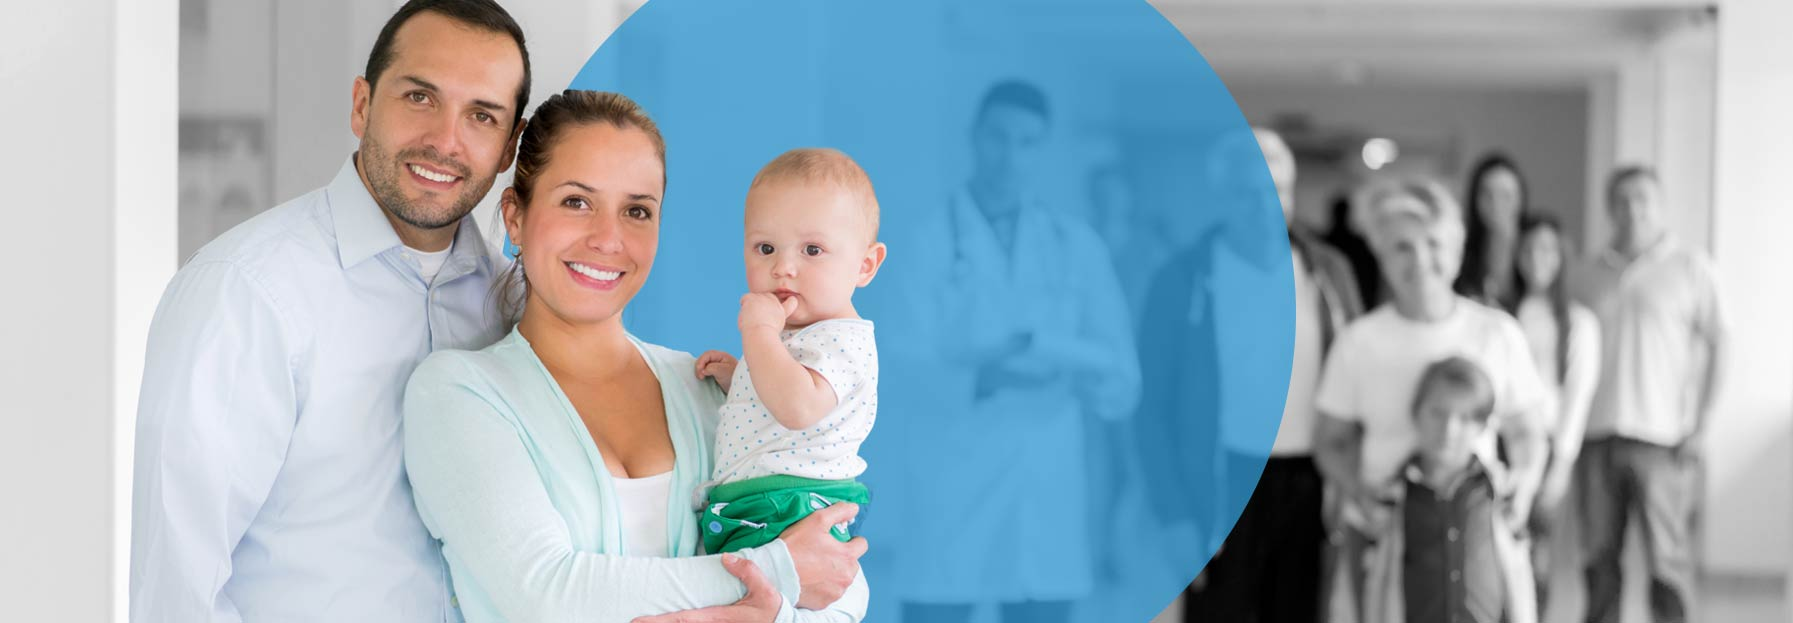 hospital and healthcare facility cleaning